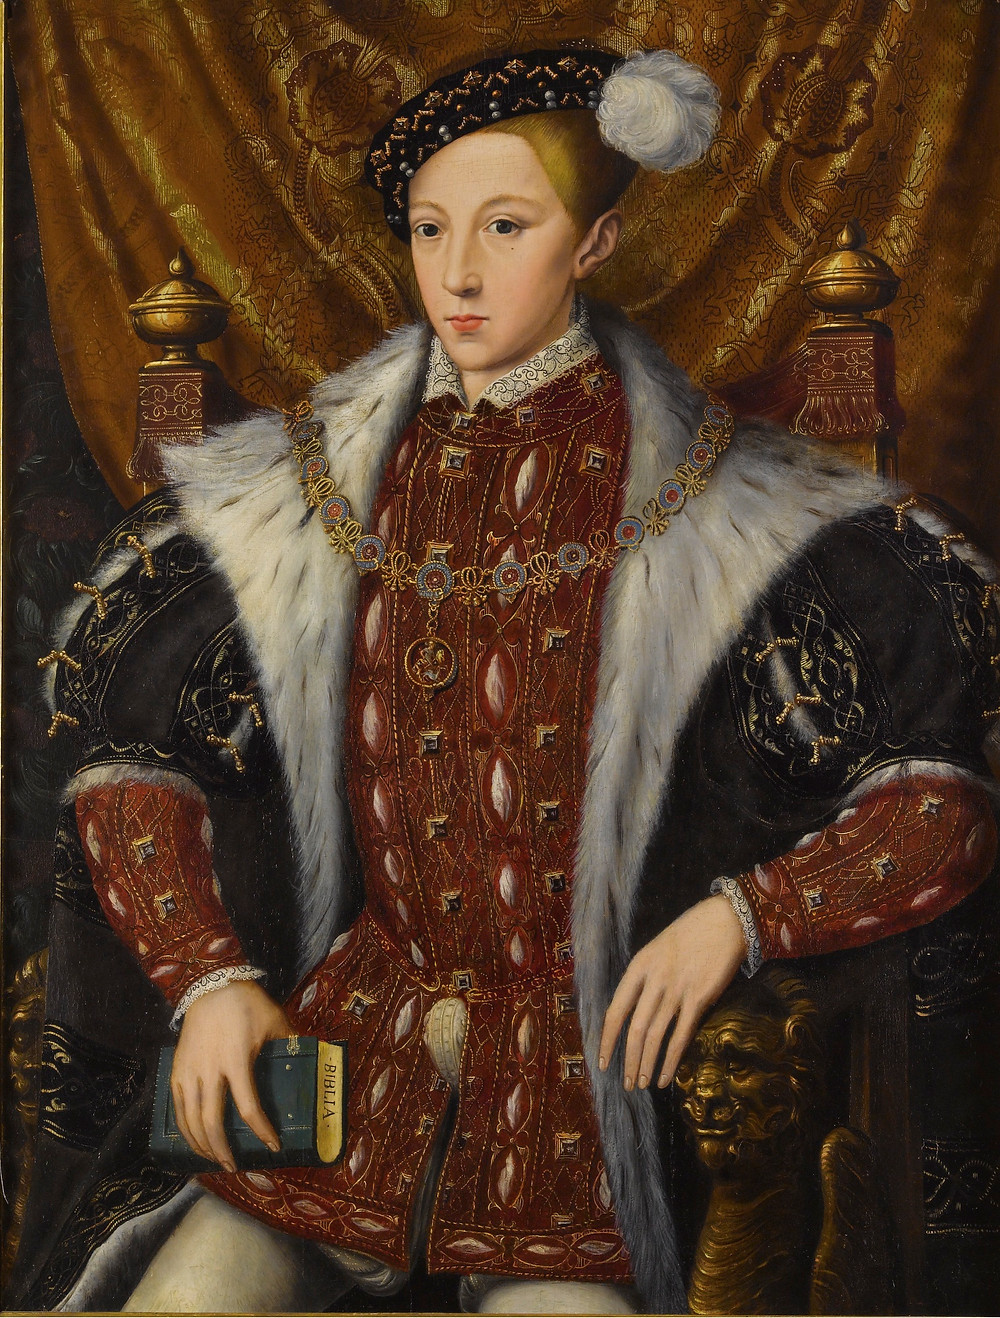 Edward VI, king of England, the son of Henry VIII & Jane Seymour